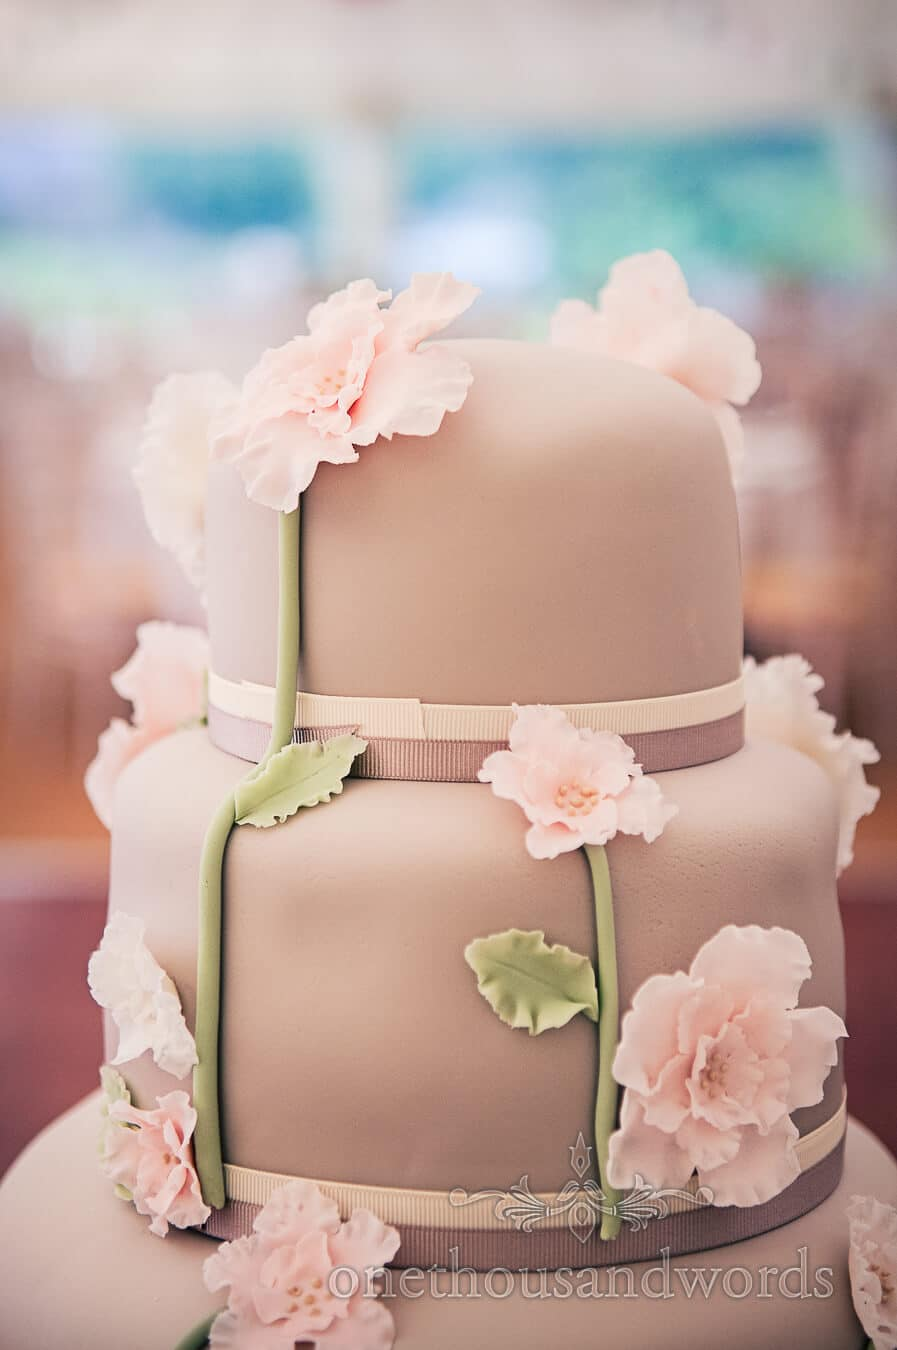 Brown wedding cake with pink flowers